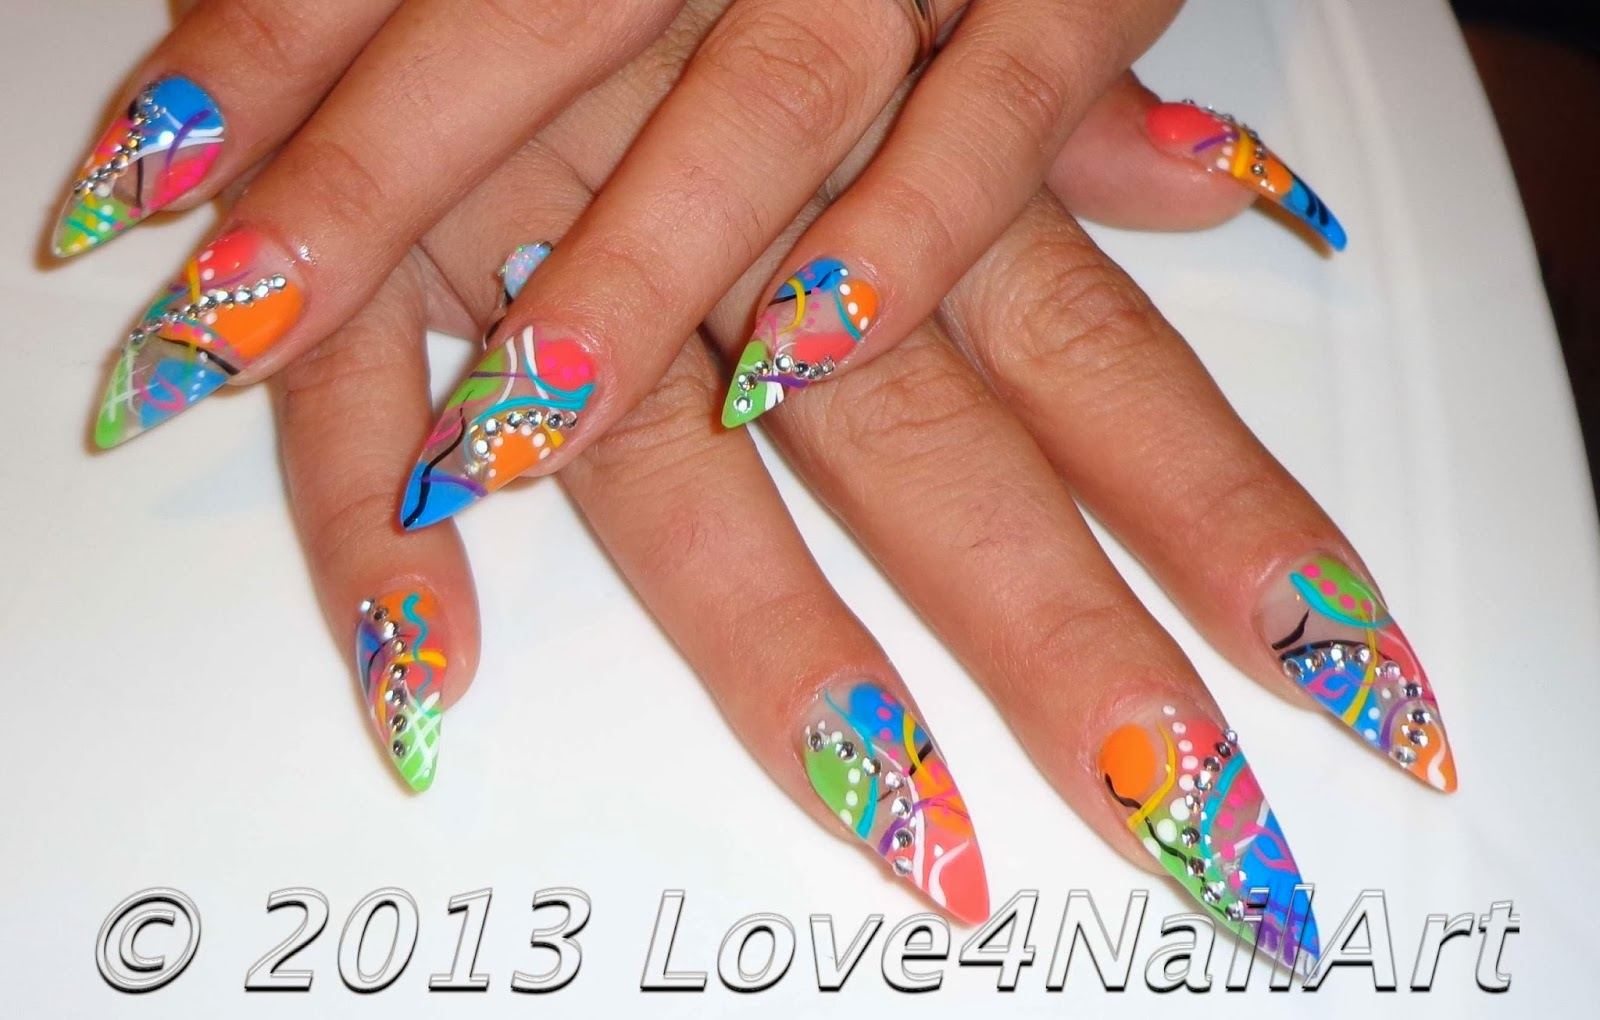 Love4nailart abstract stiletto nail art design idea 2 abstract stiletto nail art design idea 2 prinsesfo Choice Image